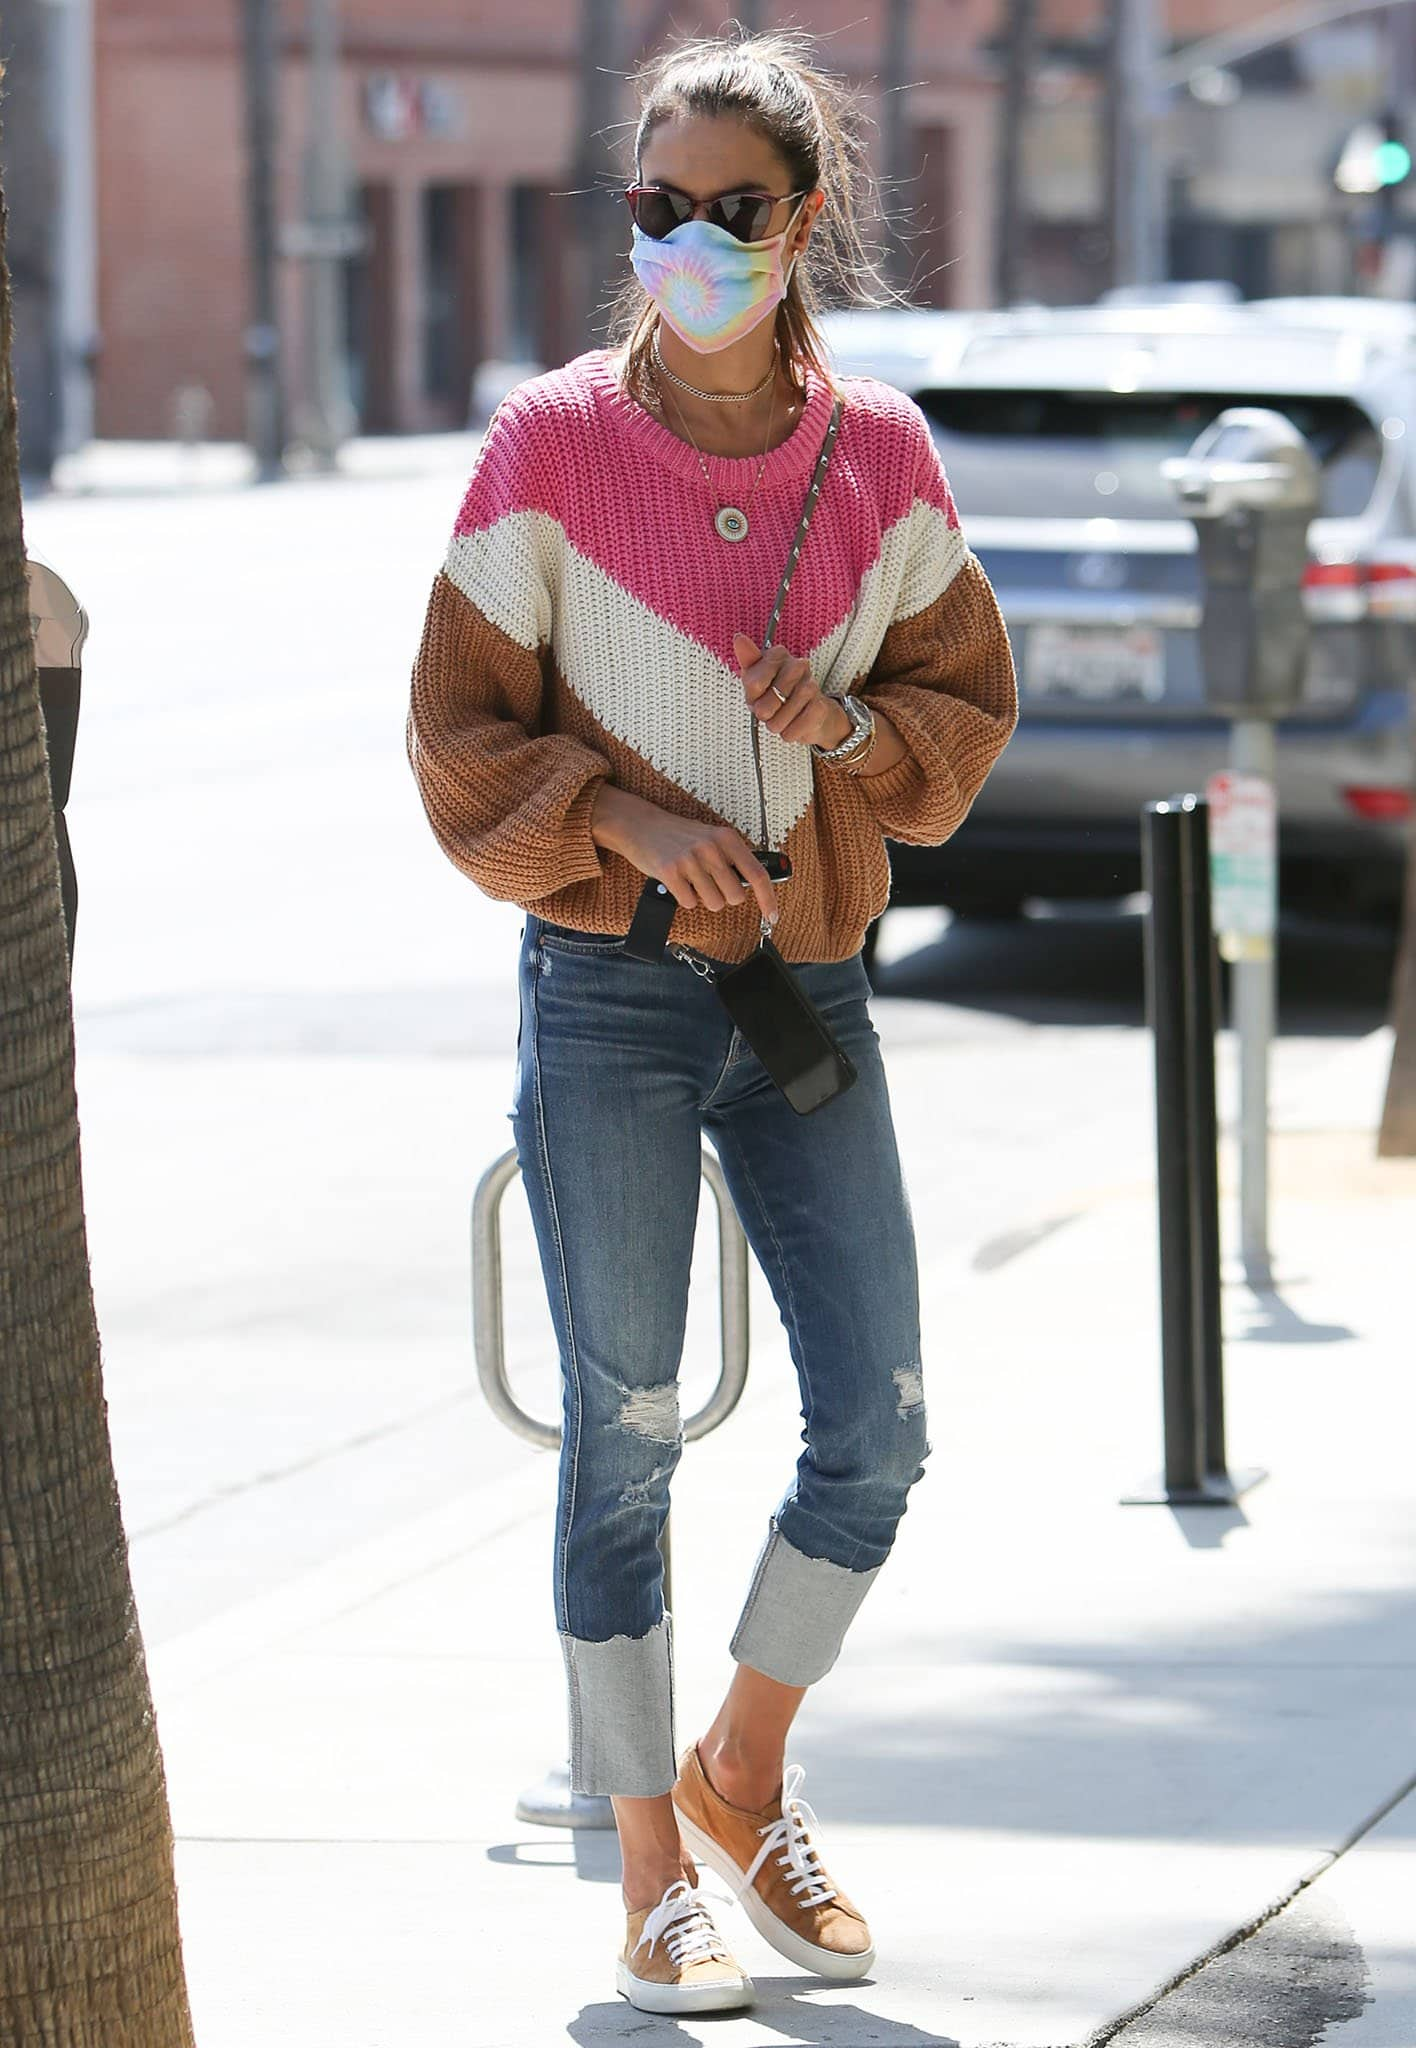 Alessandra Ambrosio steps out in Francesca's chevron color-block sweater and Mother The Pony Boy Chew jeans on April 2, 2021